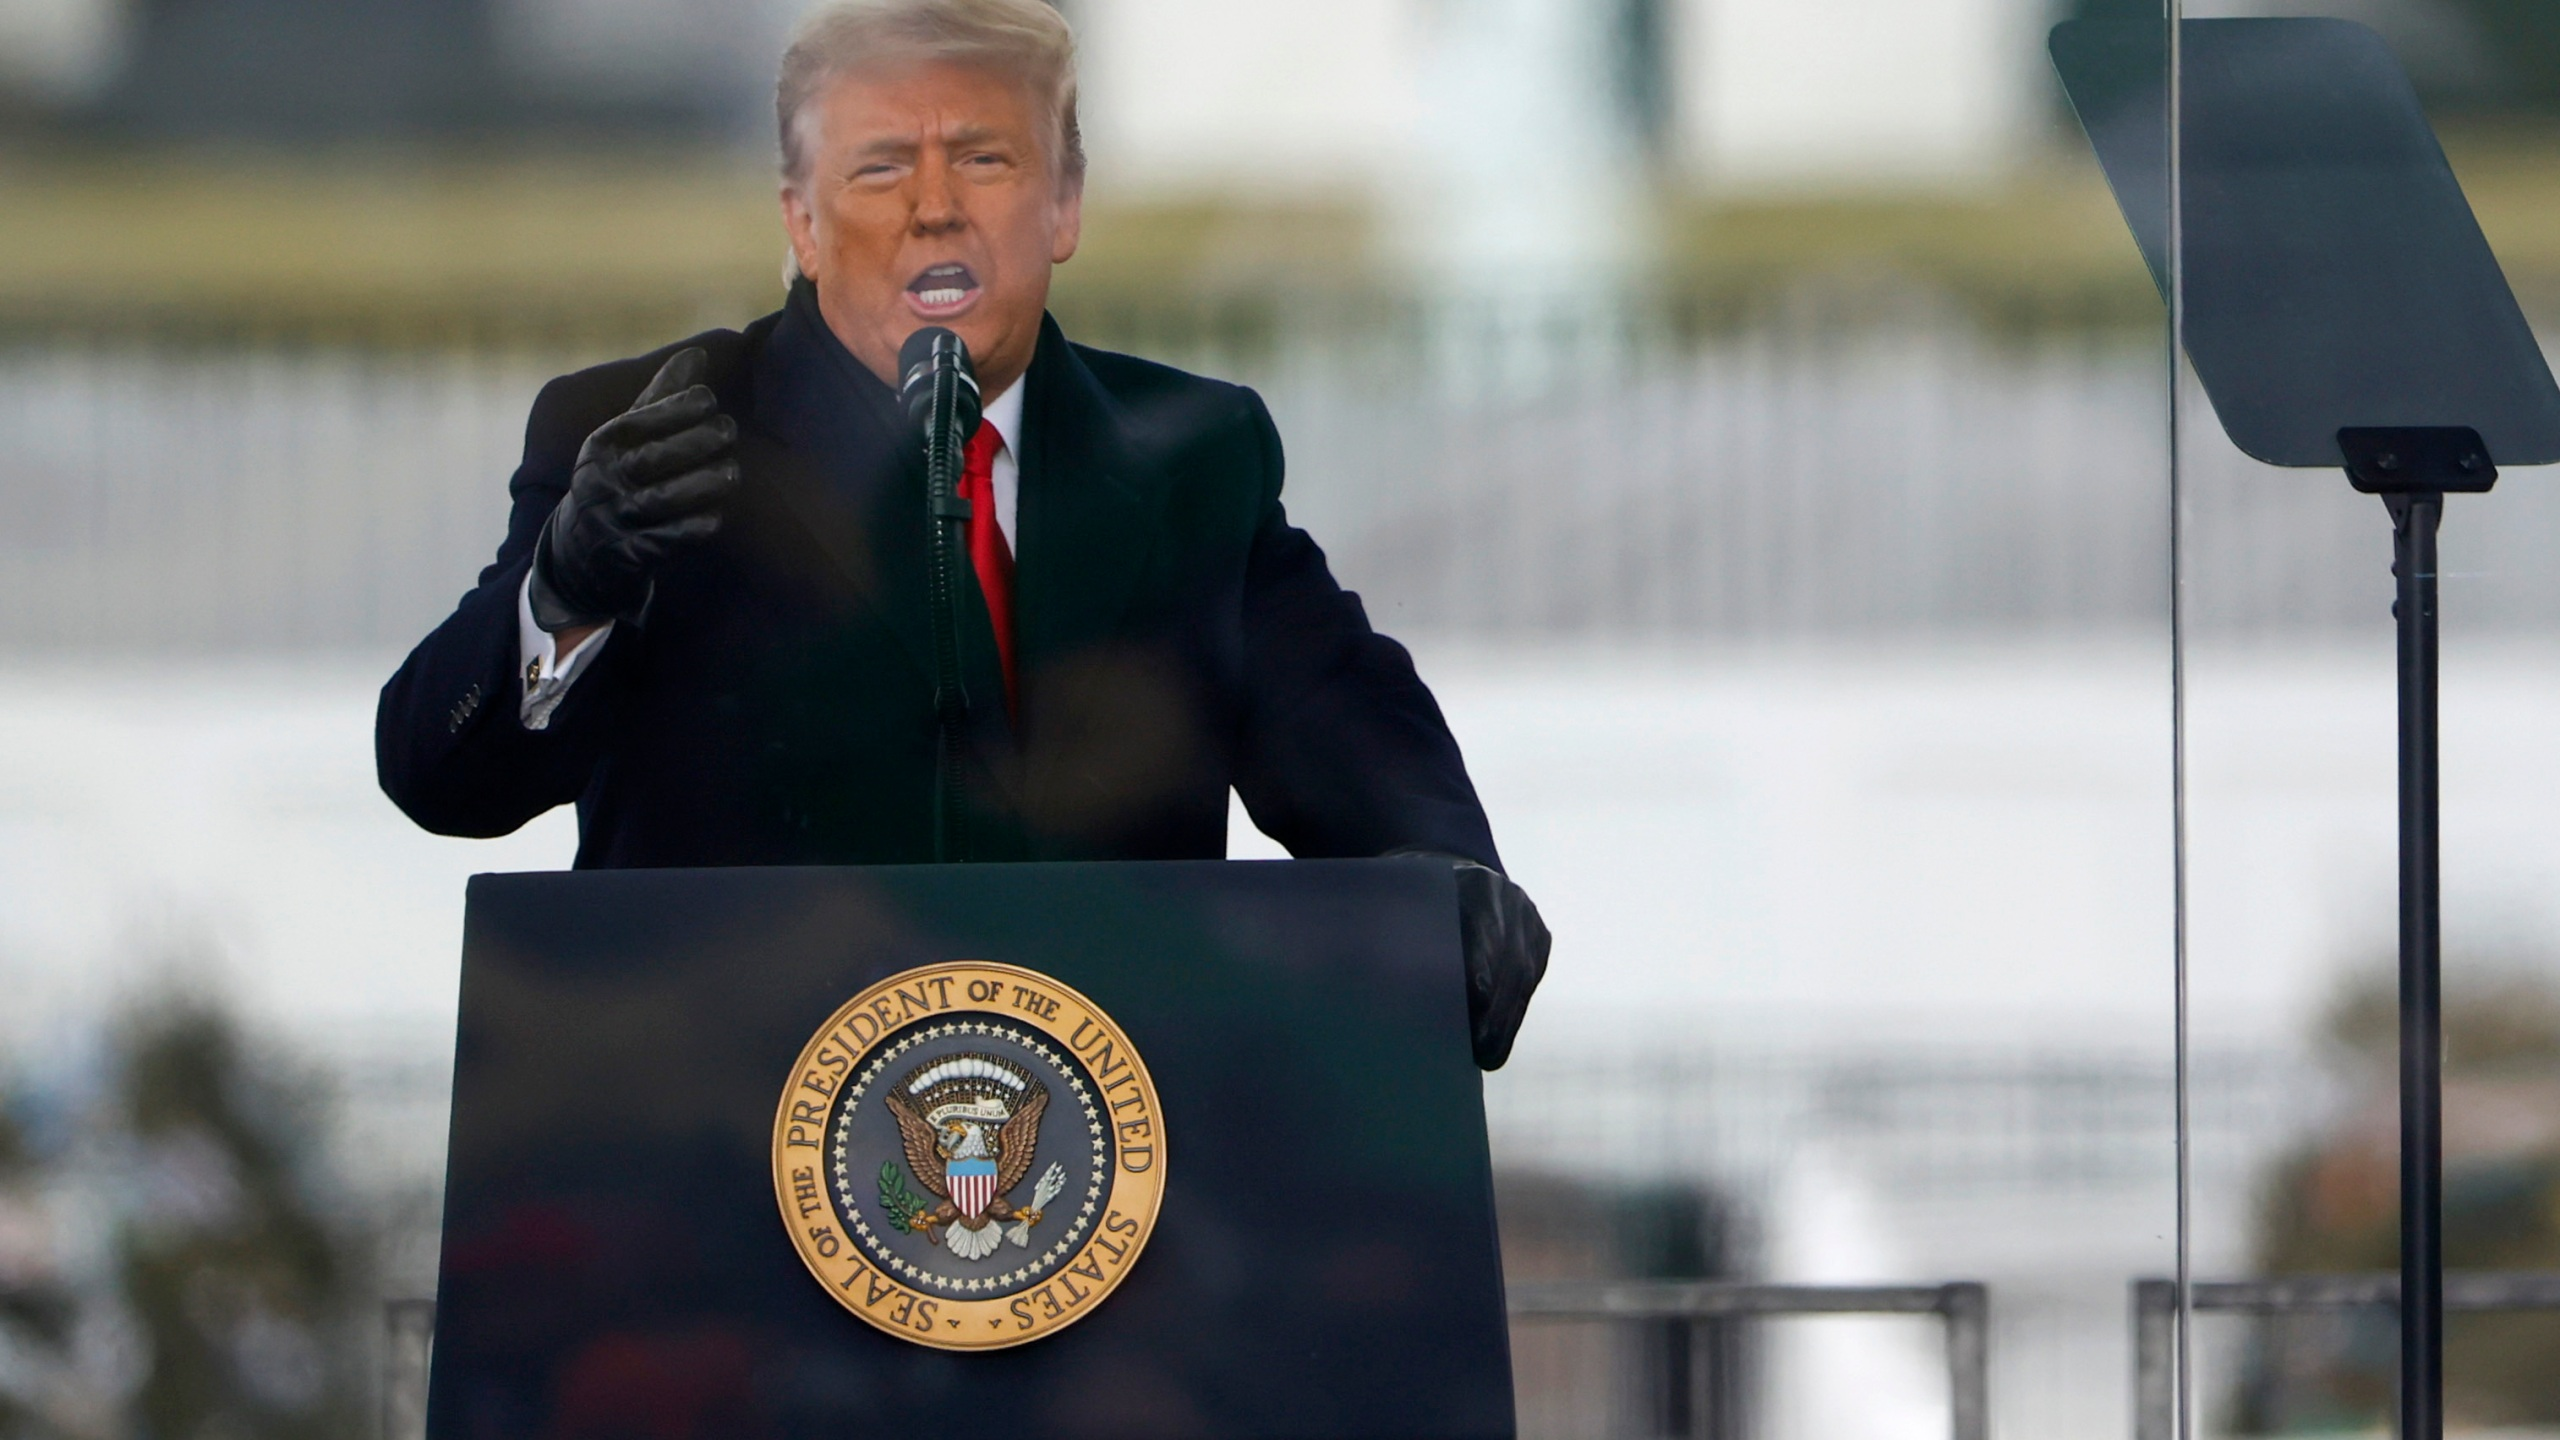 """President Donald Trump speaks at the """"Stop The Steal"""" rally in Washington, DC, on Jan. 6, 2021. (Tasos Katopodis / Getty Images)"""